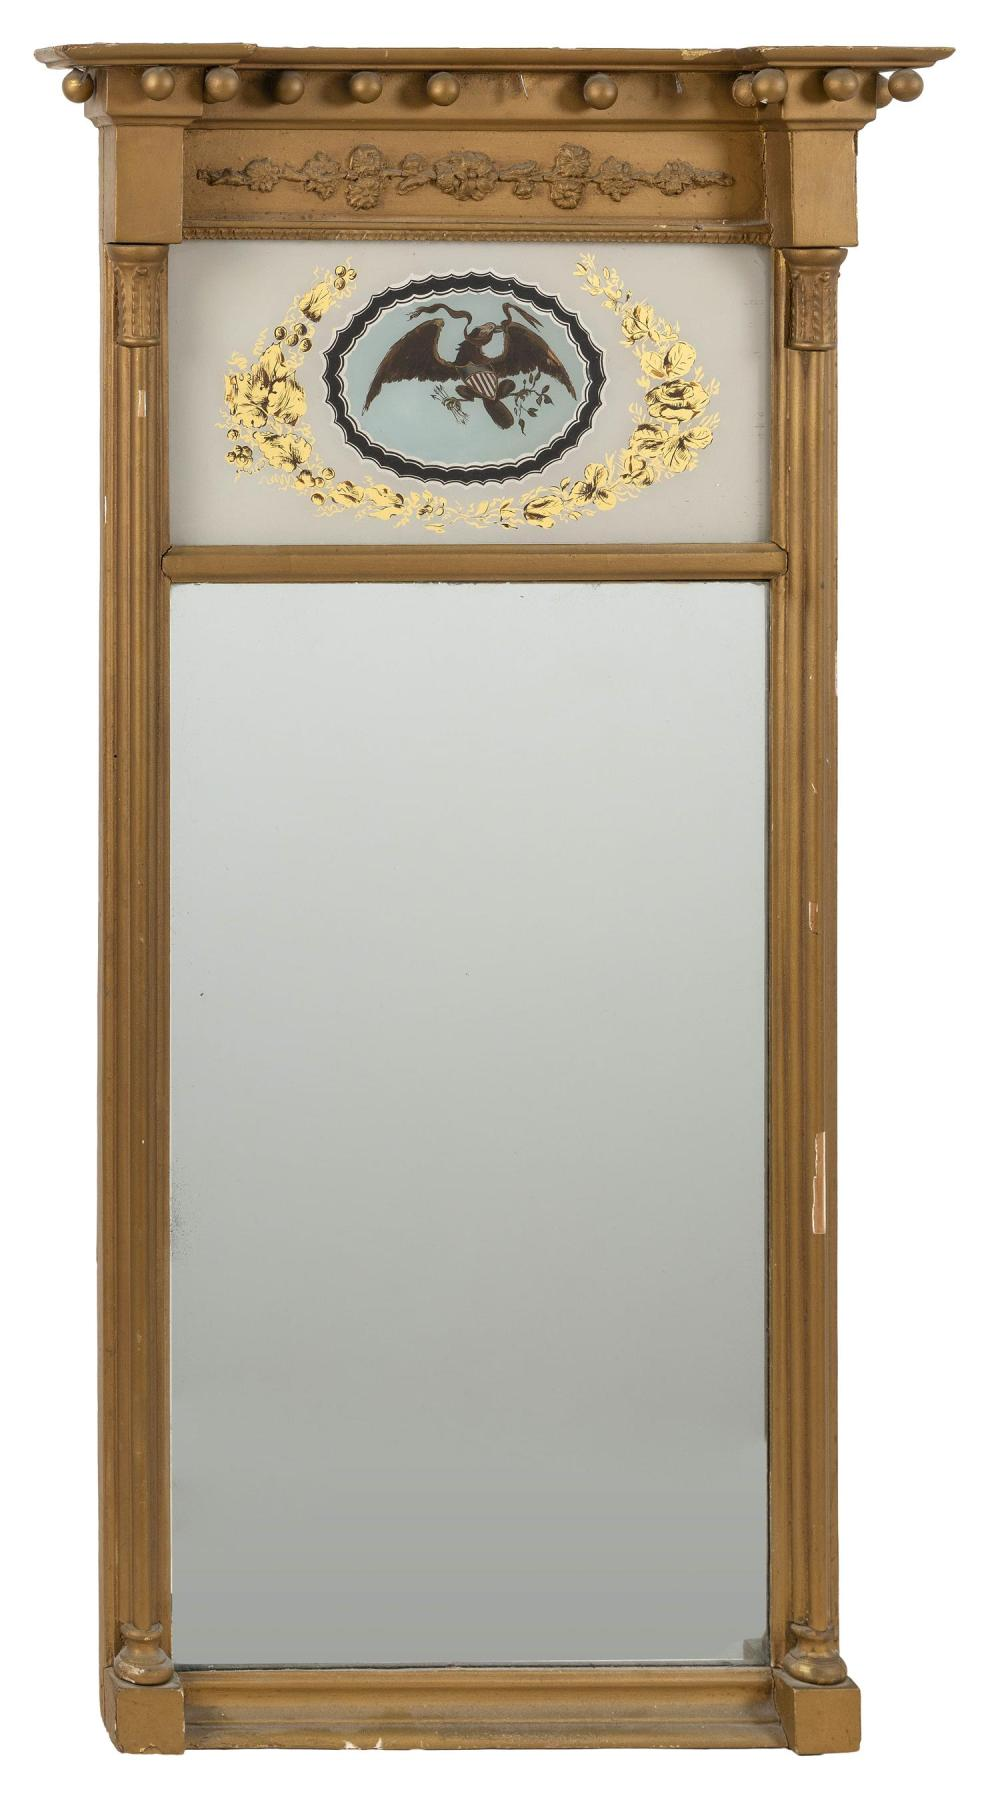 ARCHITECTURAL MIRROR Frame with acanthus leaf-molded half columns at sides. Reverse-painted upper tablet depicts a spread-wing eagle...